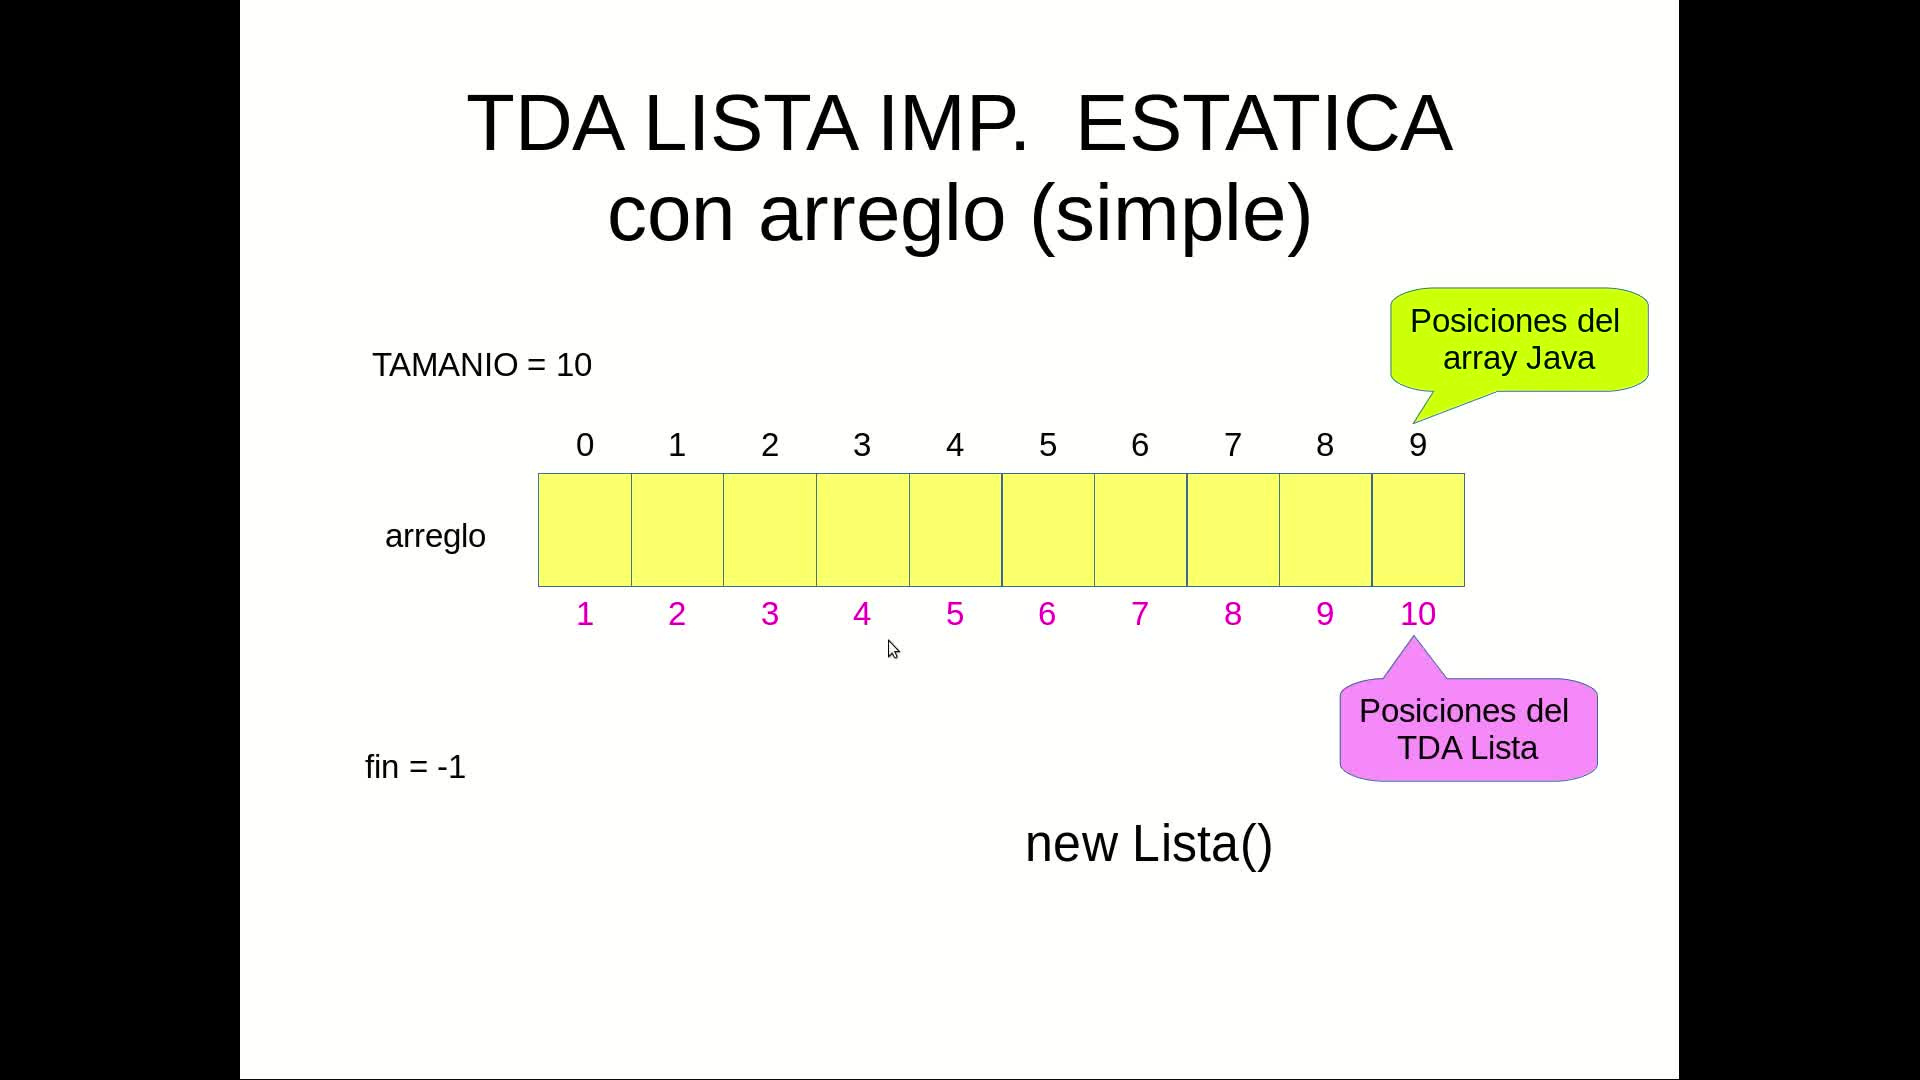 EDAT - Video 2.5 - TDA Lista (Implementación dinamica) - Parte I